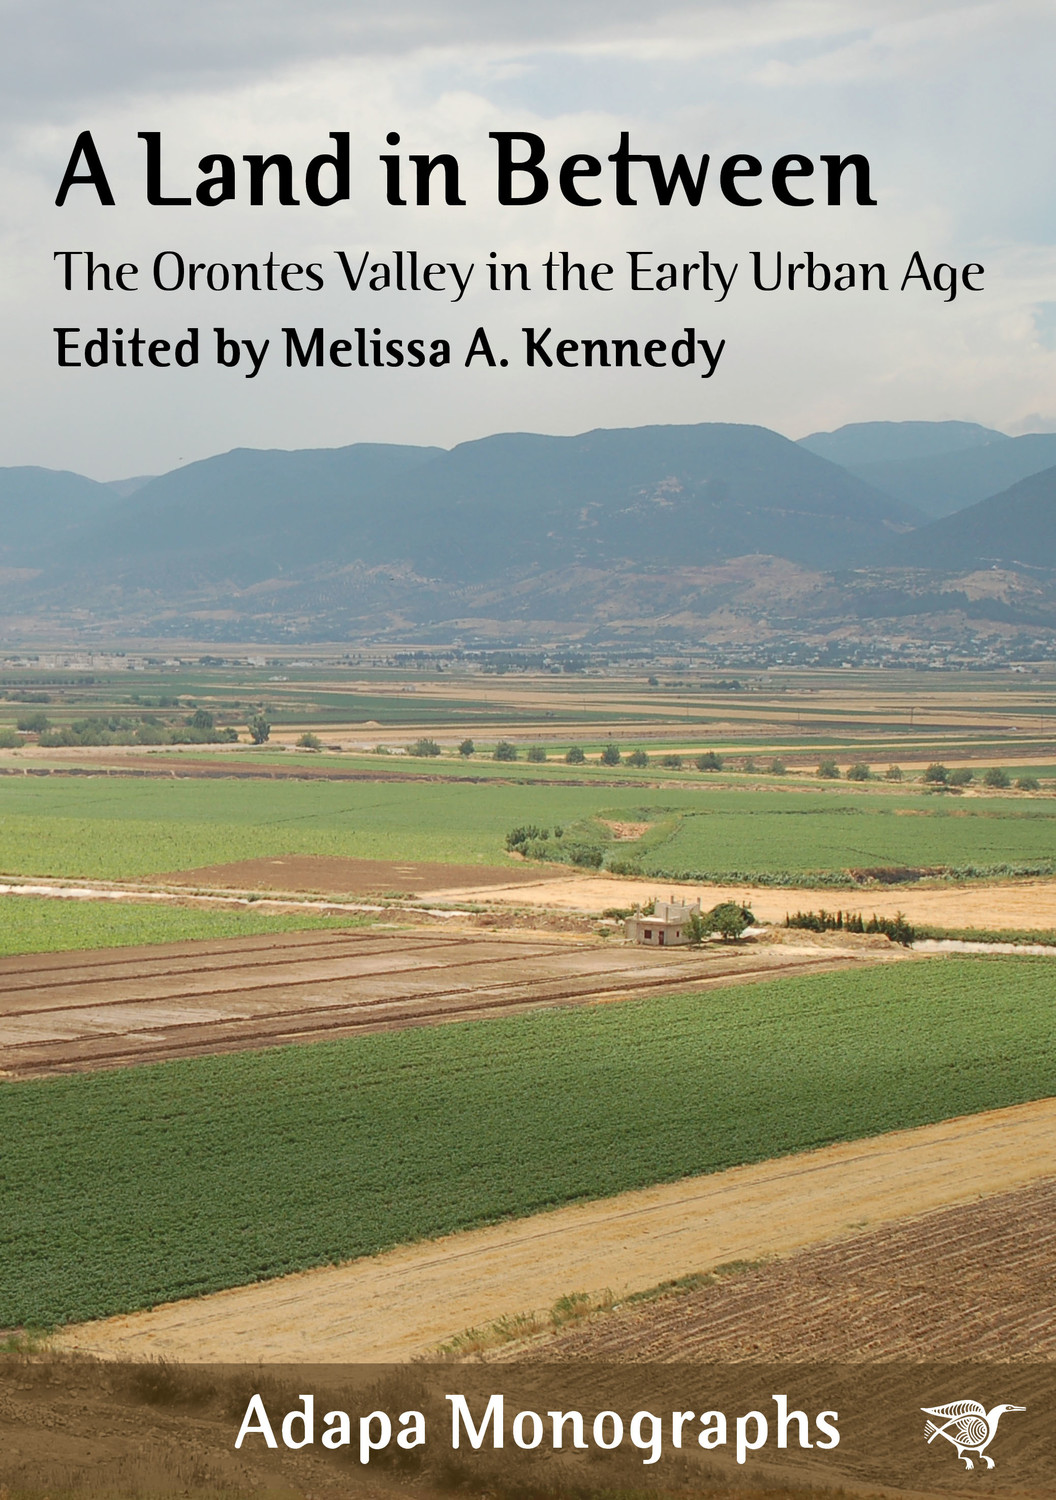 Land in Between: The Orontes Valley in the Early Urban Age